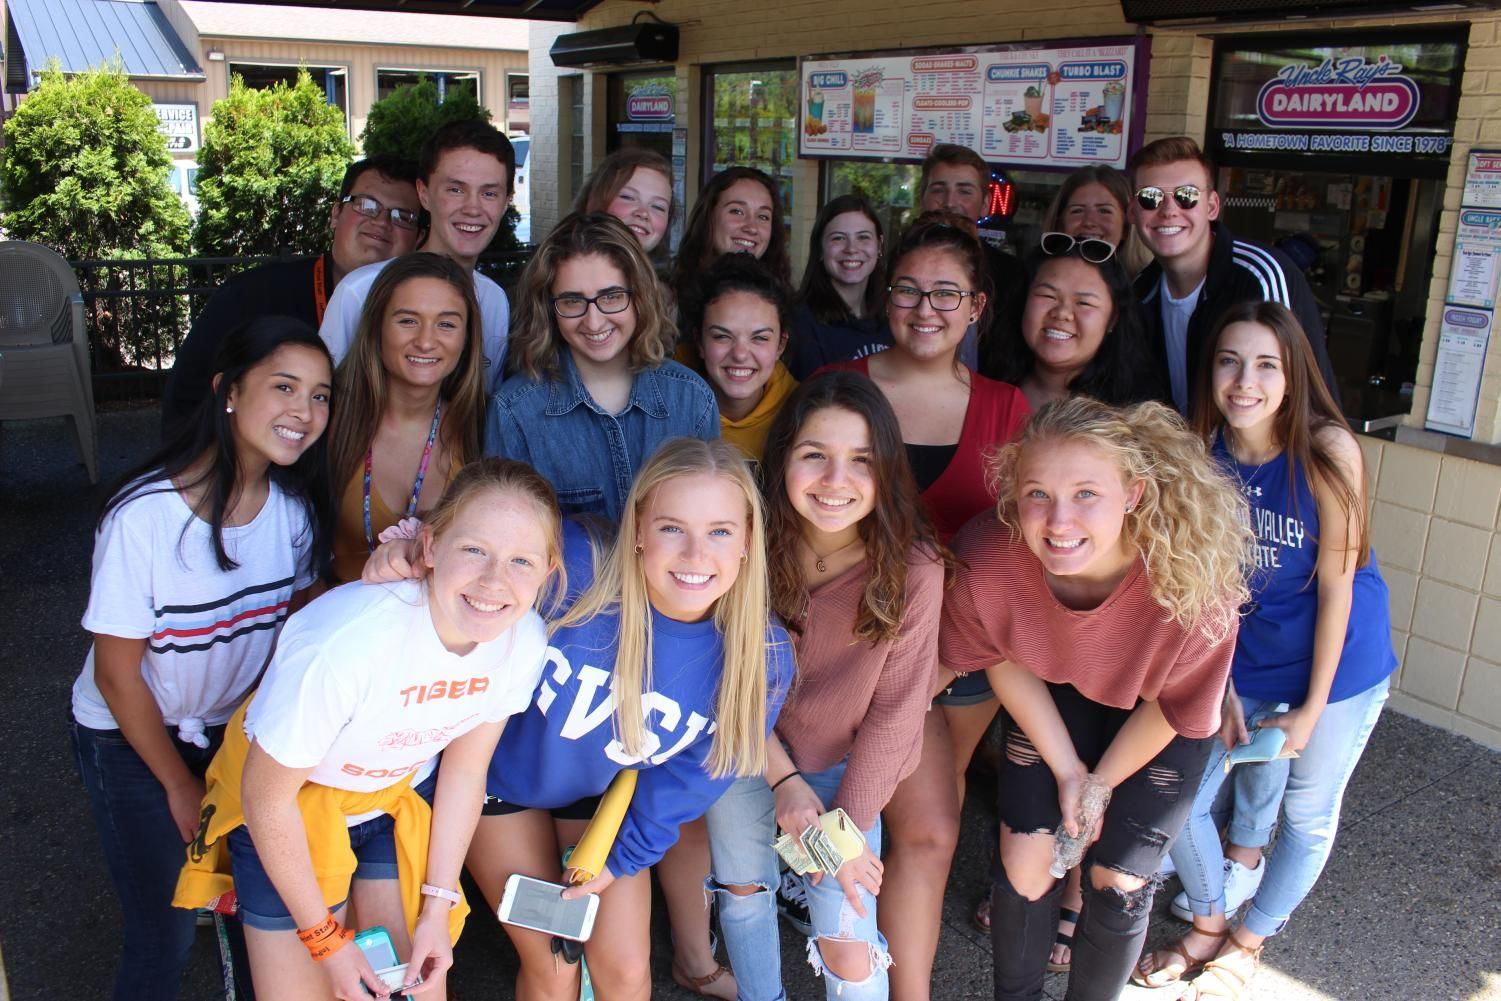 Happy last day of school! To celebrate the end of the year, the Fenton InPrint staff traveled to Uncle Rays for ice cream.